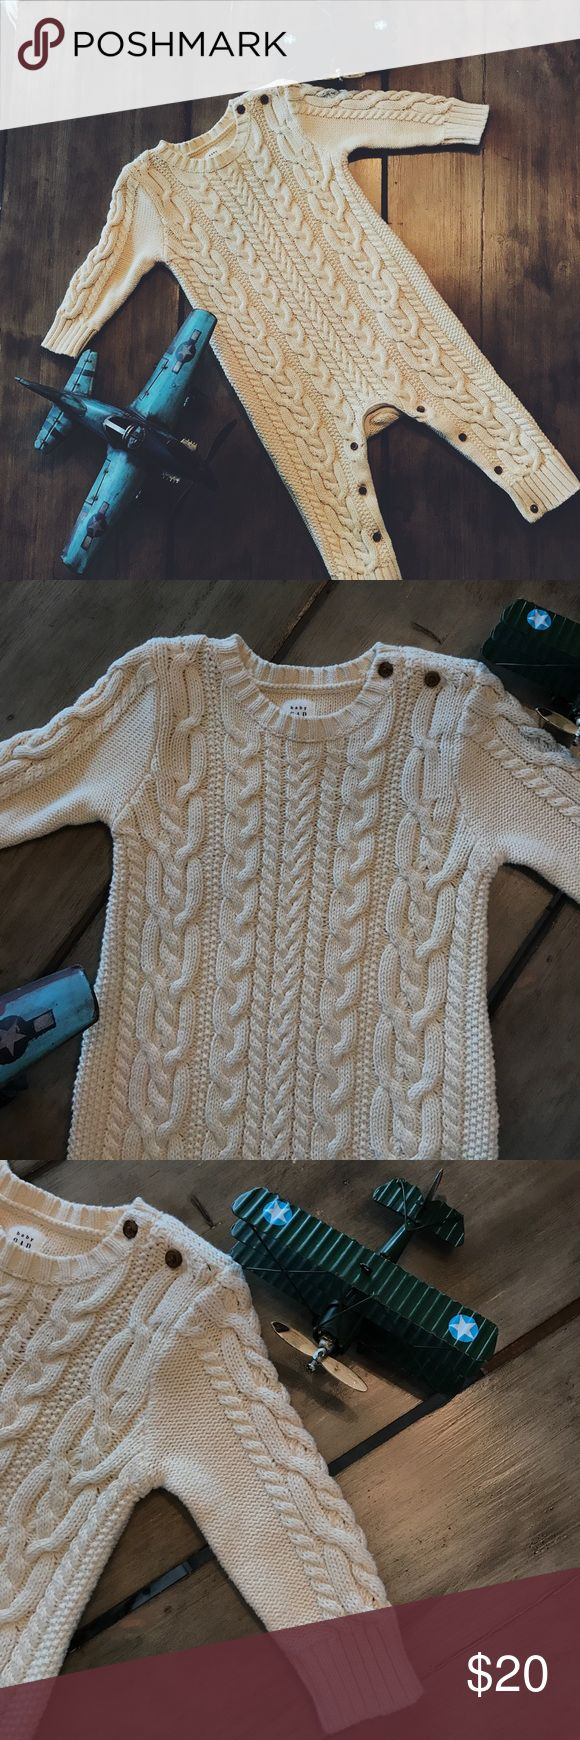 "✈️ Baby Gap 6-12M Cable Knit Sweater One-Piece  Gently used Baby Gap cable knit sweater one-piece-- size 6-12M-- ""french vanilla"" cream color with brown buttons-- snap and button closure-- only worn once for family pictures-- perfect condition  GAP One Pieces"